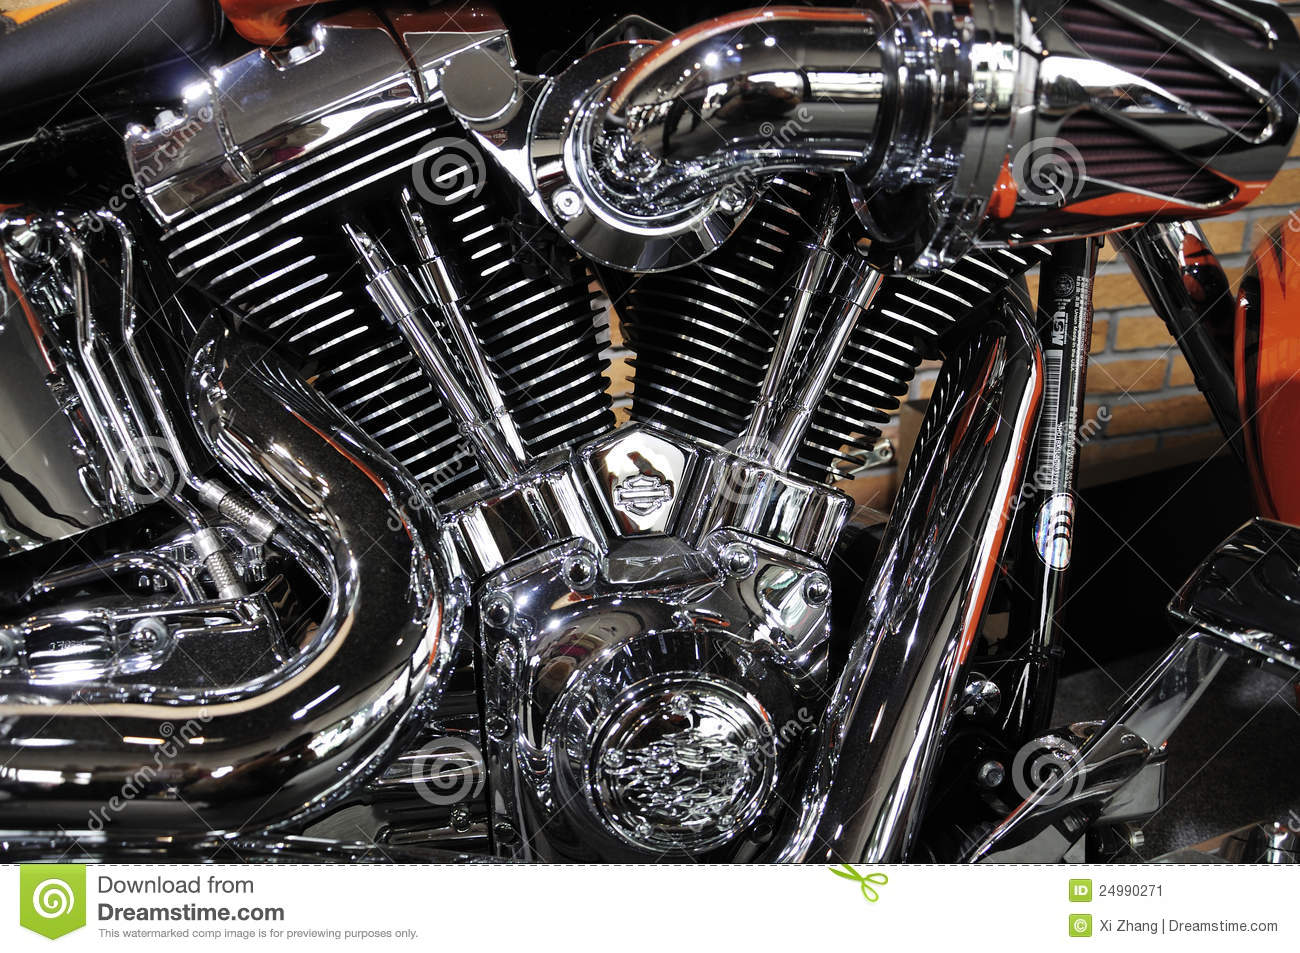 Harley Davidson Motorcycle Engine Editorial Photo - Image: 24990271